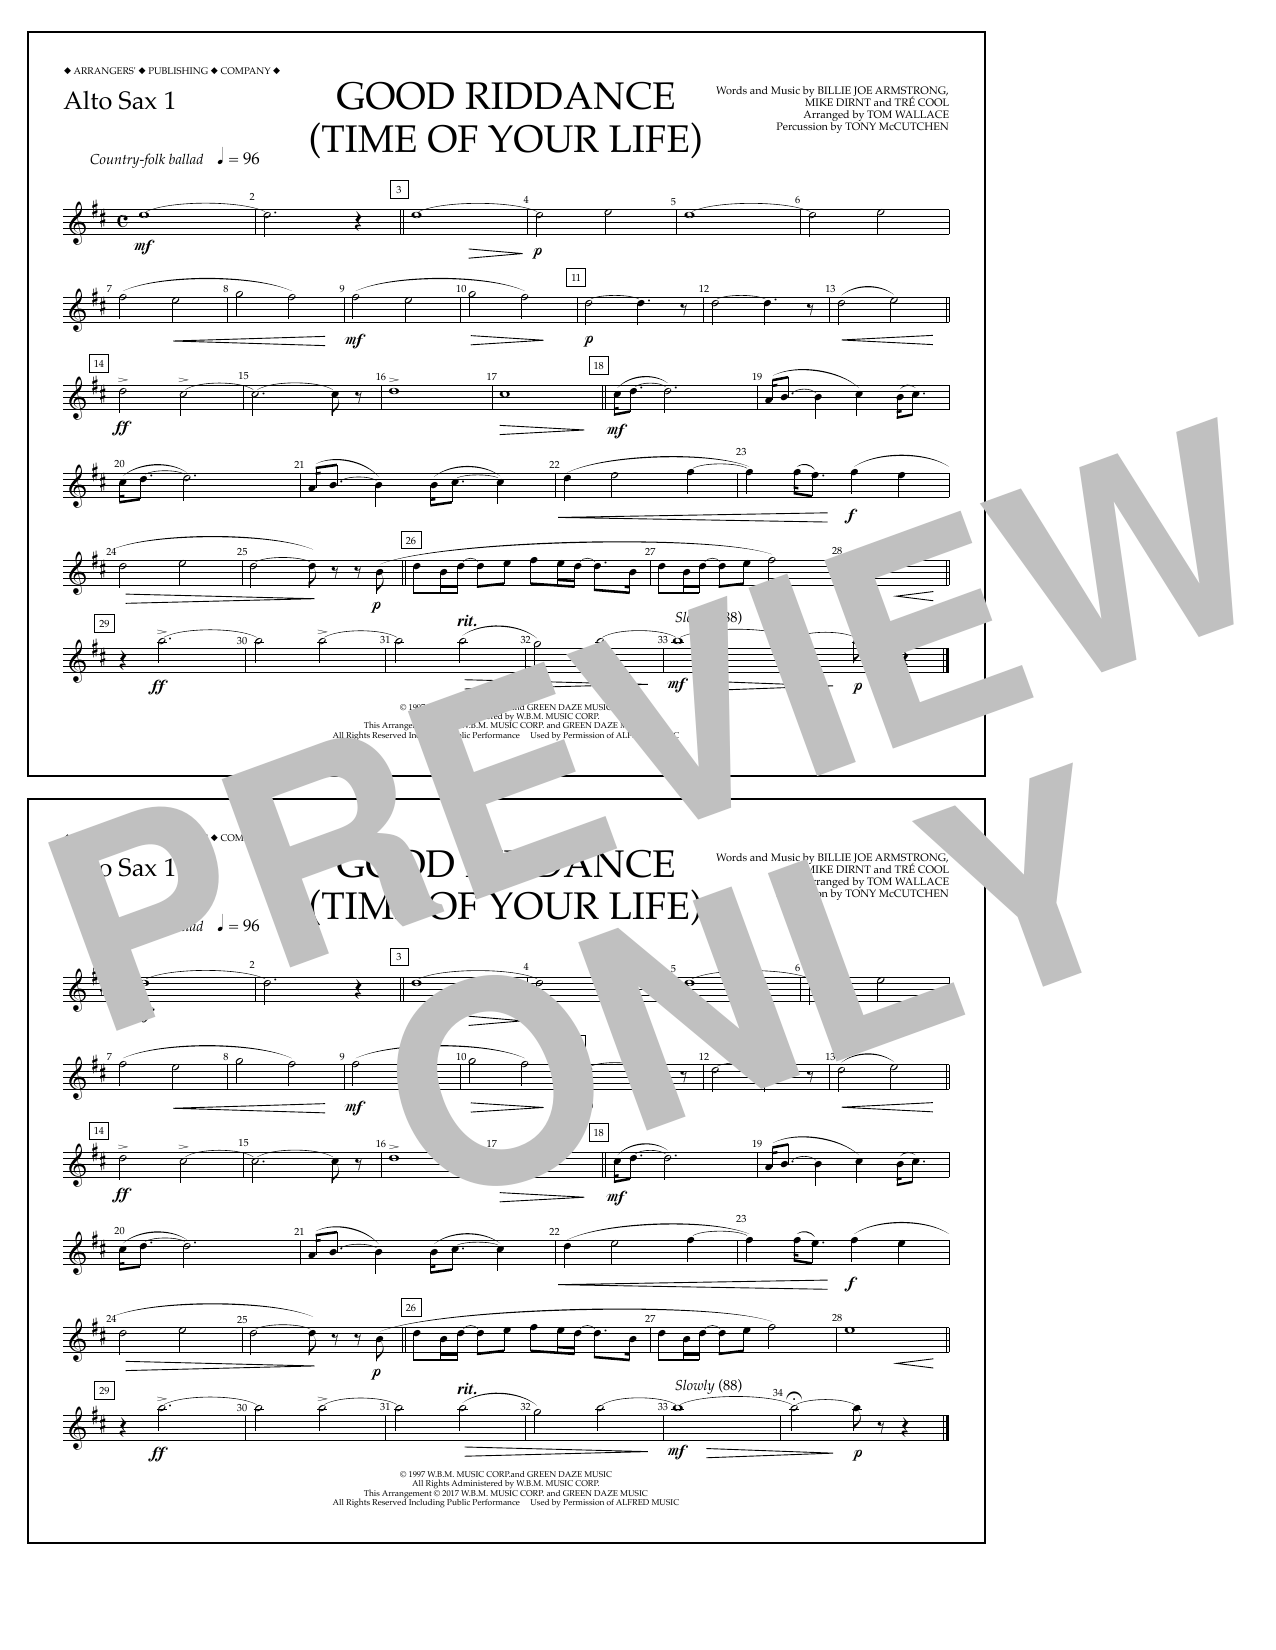 Good Riddance (Time of Your Life) - Alto Sax 1 Sheet Music